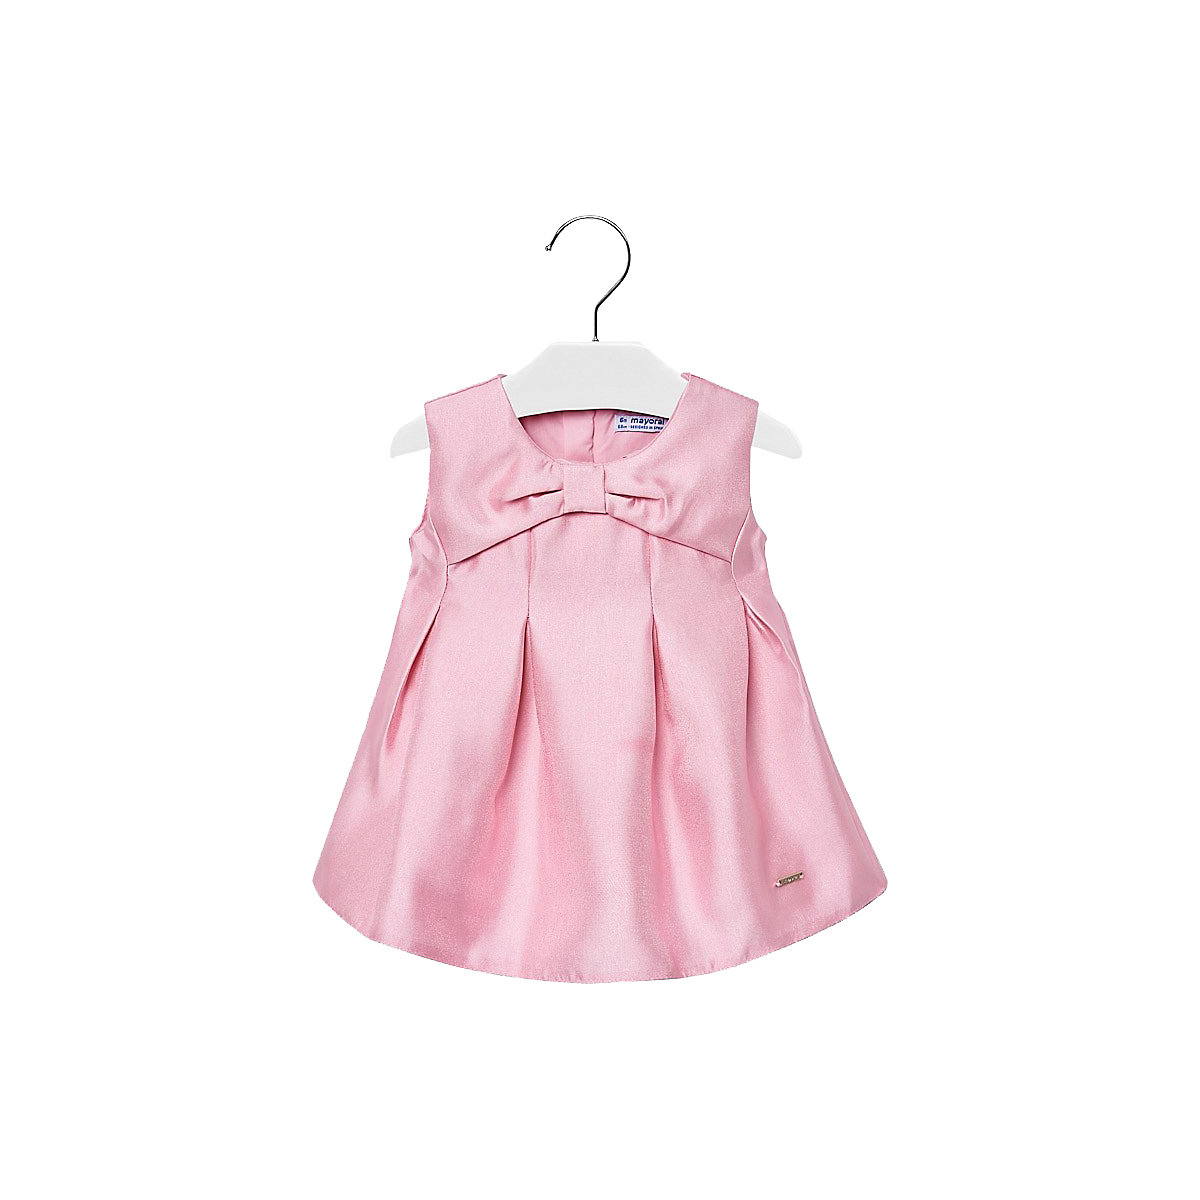 MAYORAL Dresses 10678708 Girl Children Party fitted pleated skirt Pink Polyester Preppy Style Solid Knee-Length Sleeveless Sleeve navy velvet mini pleated skirt